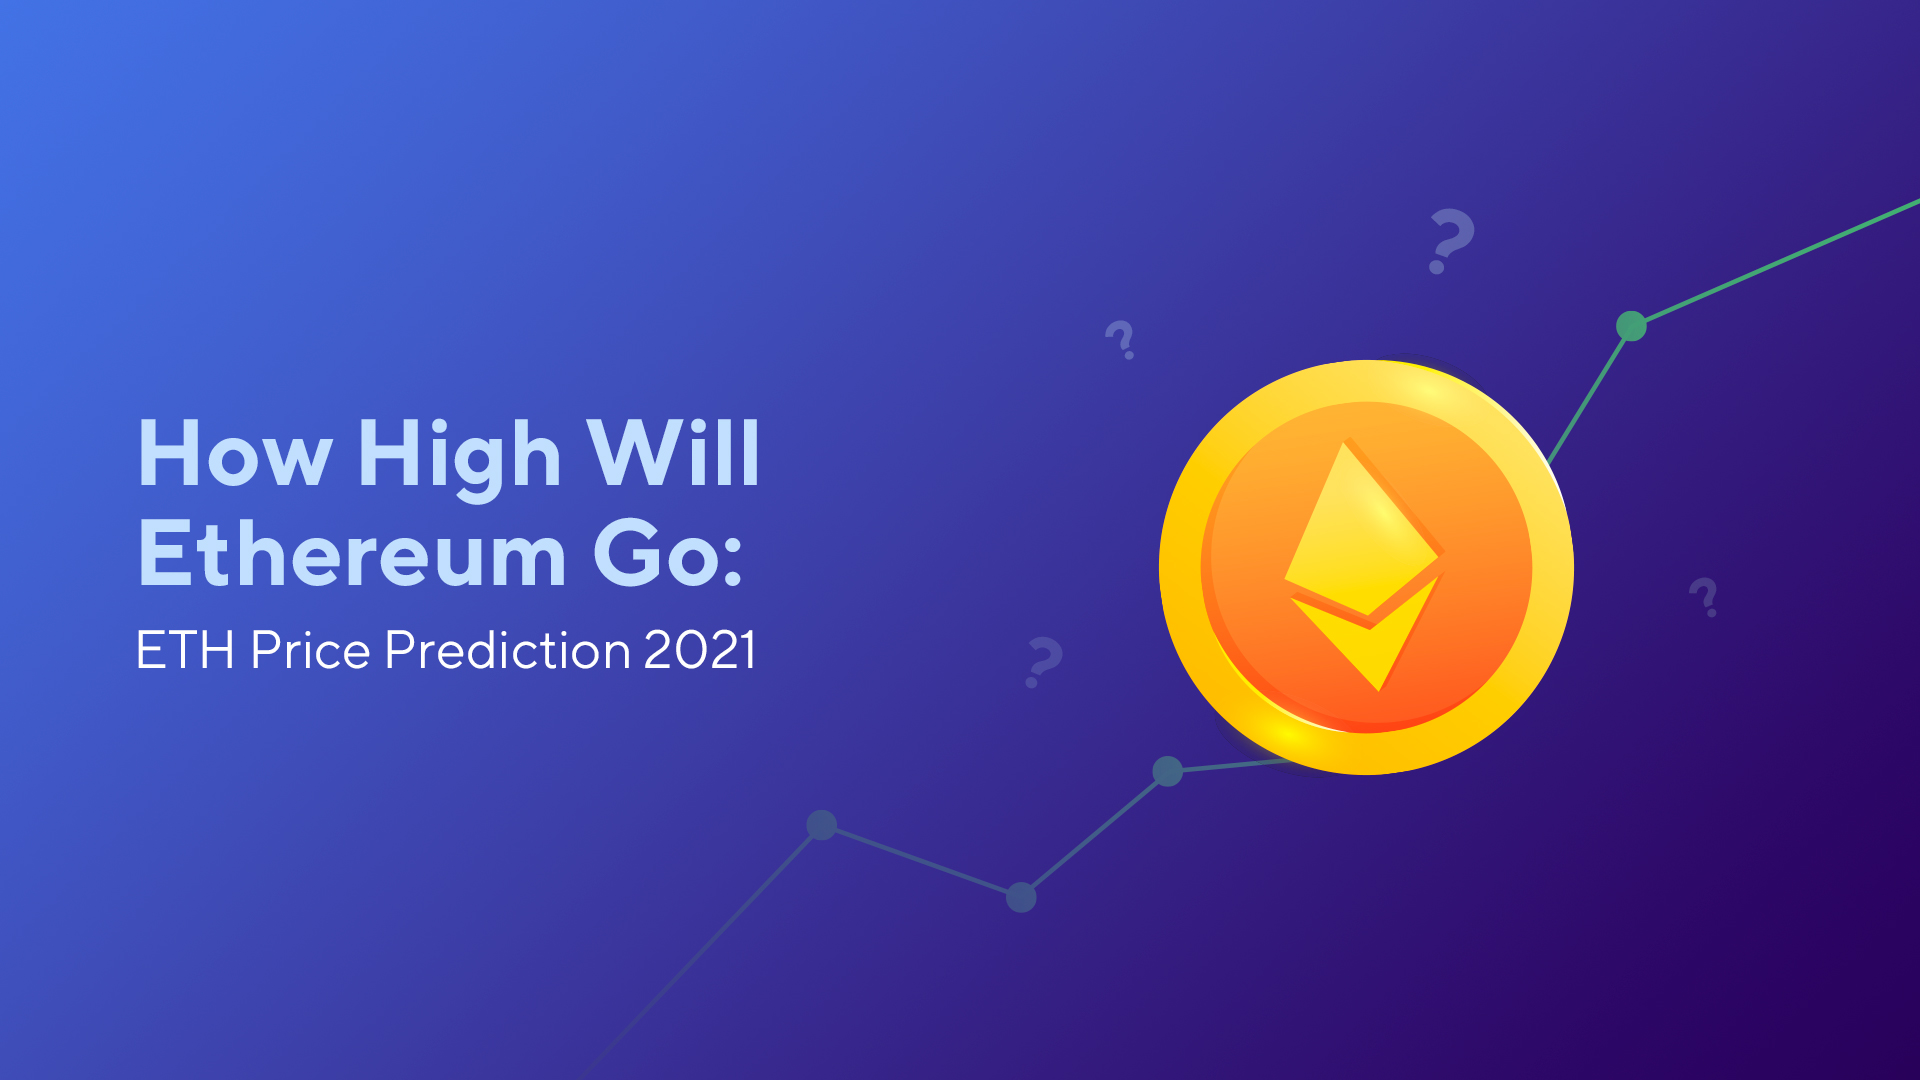 How High Will Ethereum Go: ETH Price Prediction 2021